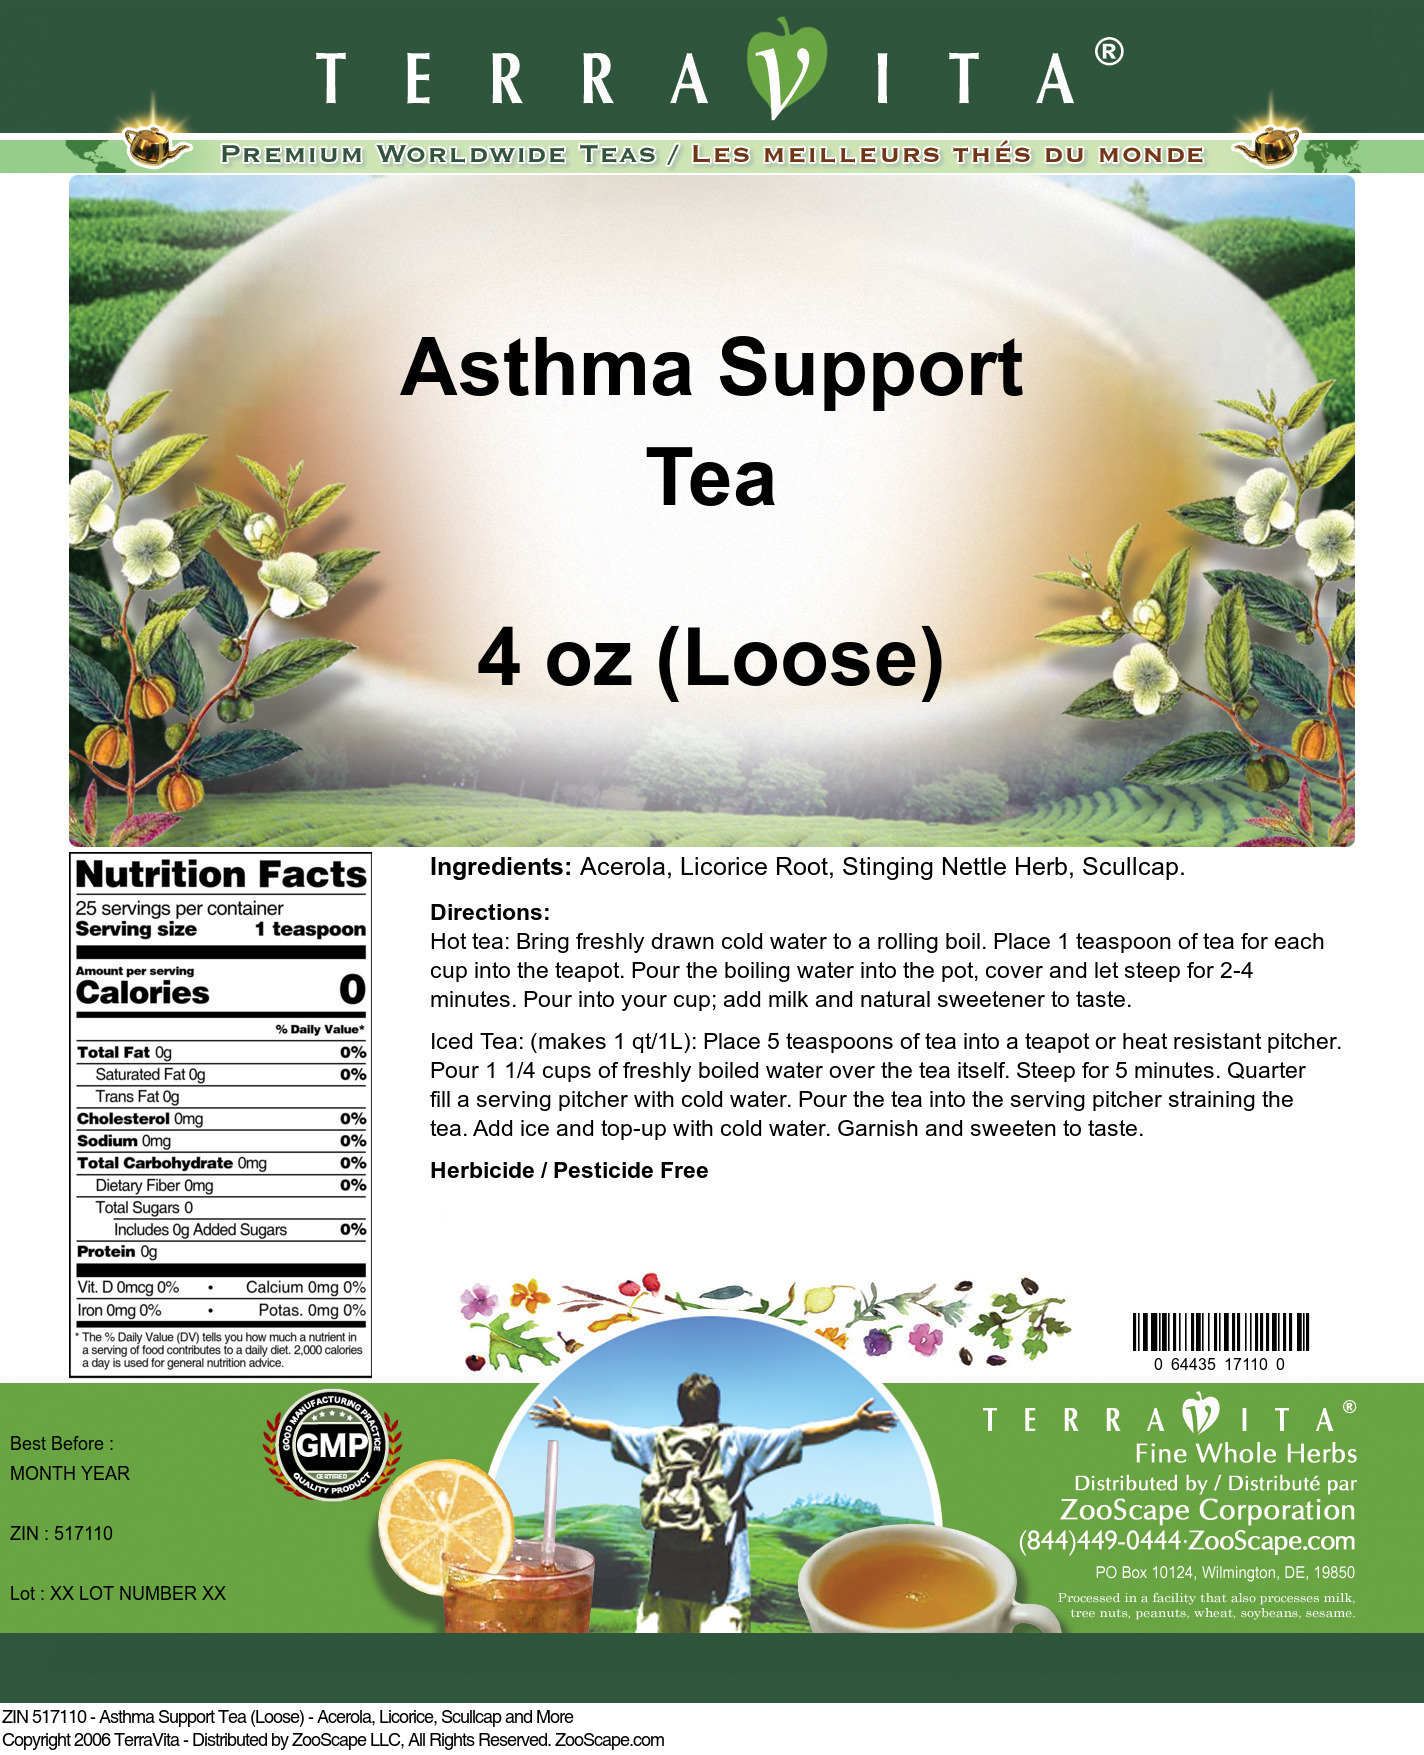 Asthma Support Tea (Loose) - Acerola, Licorice, Scullcap and More